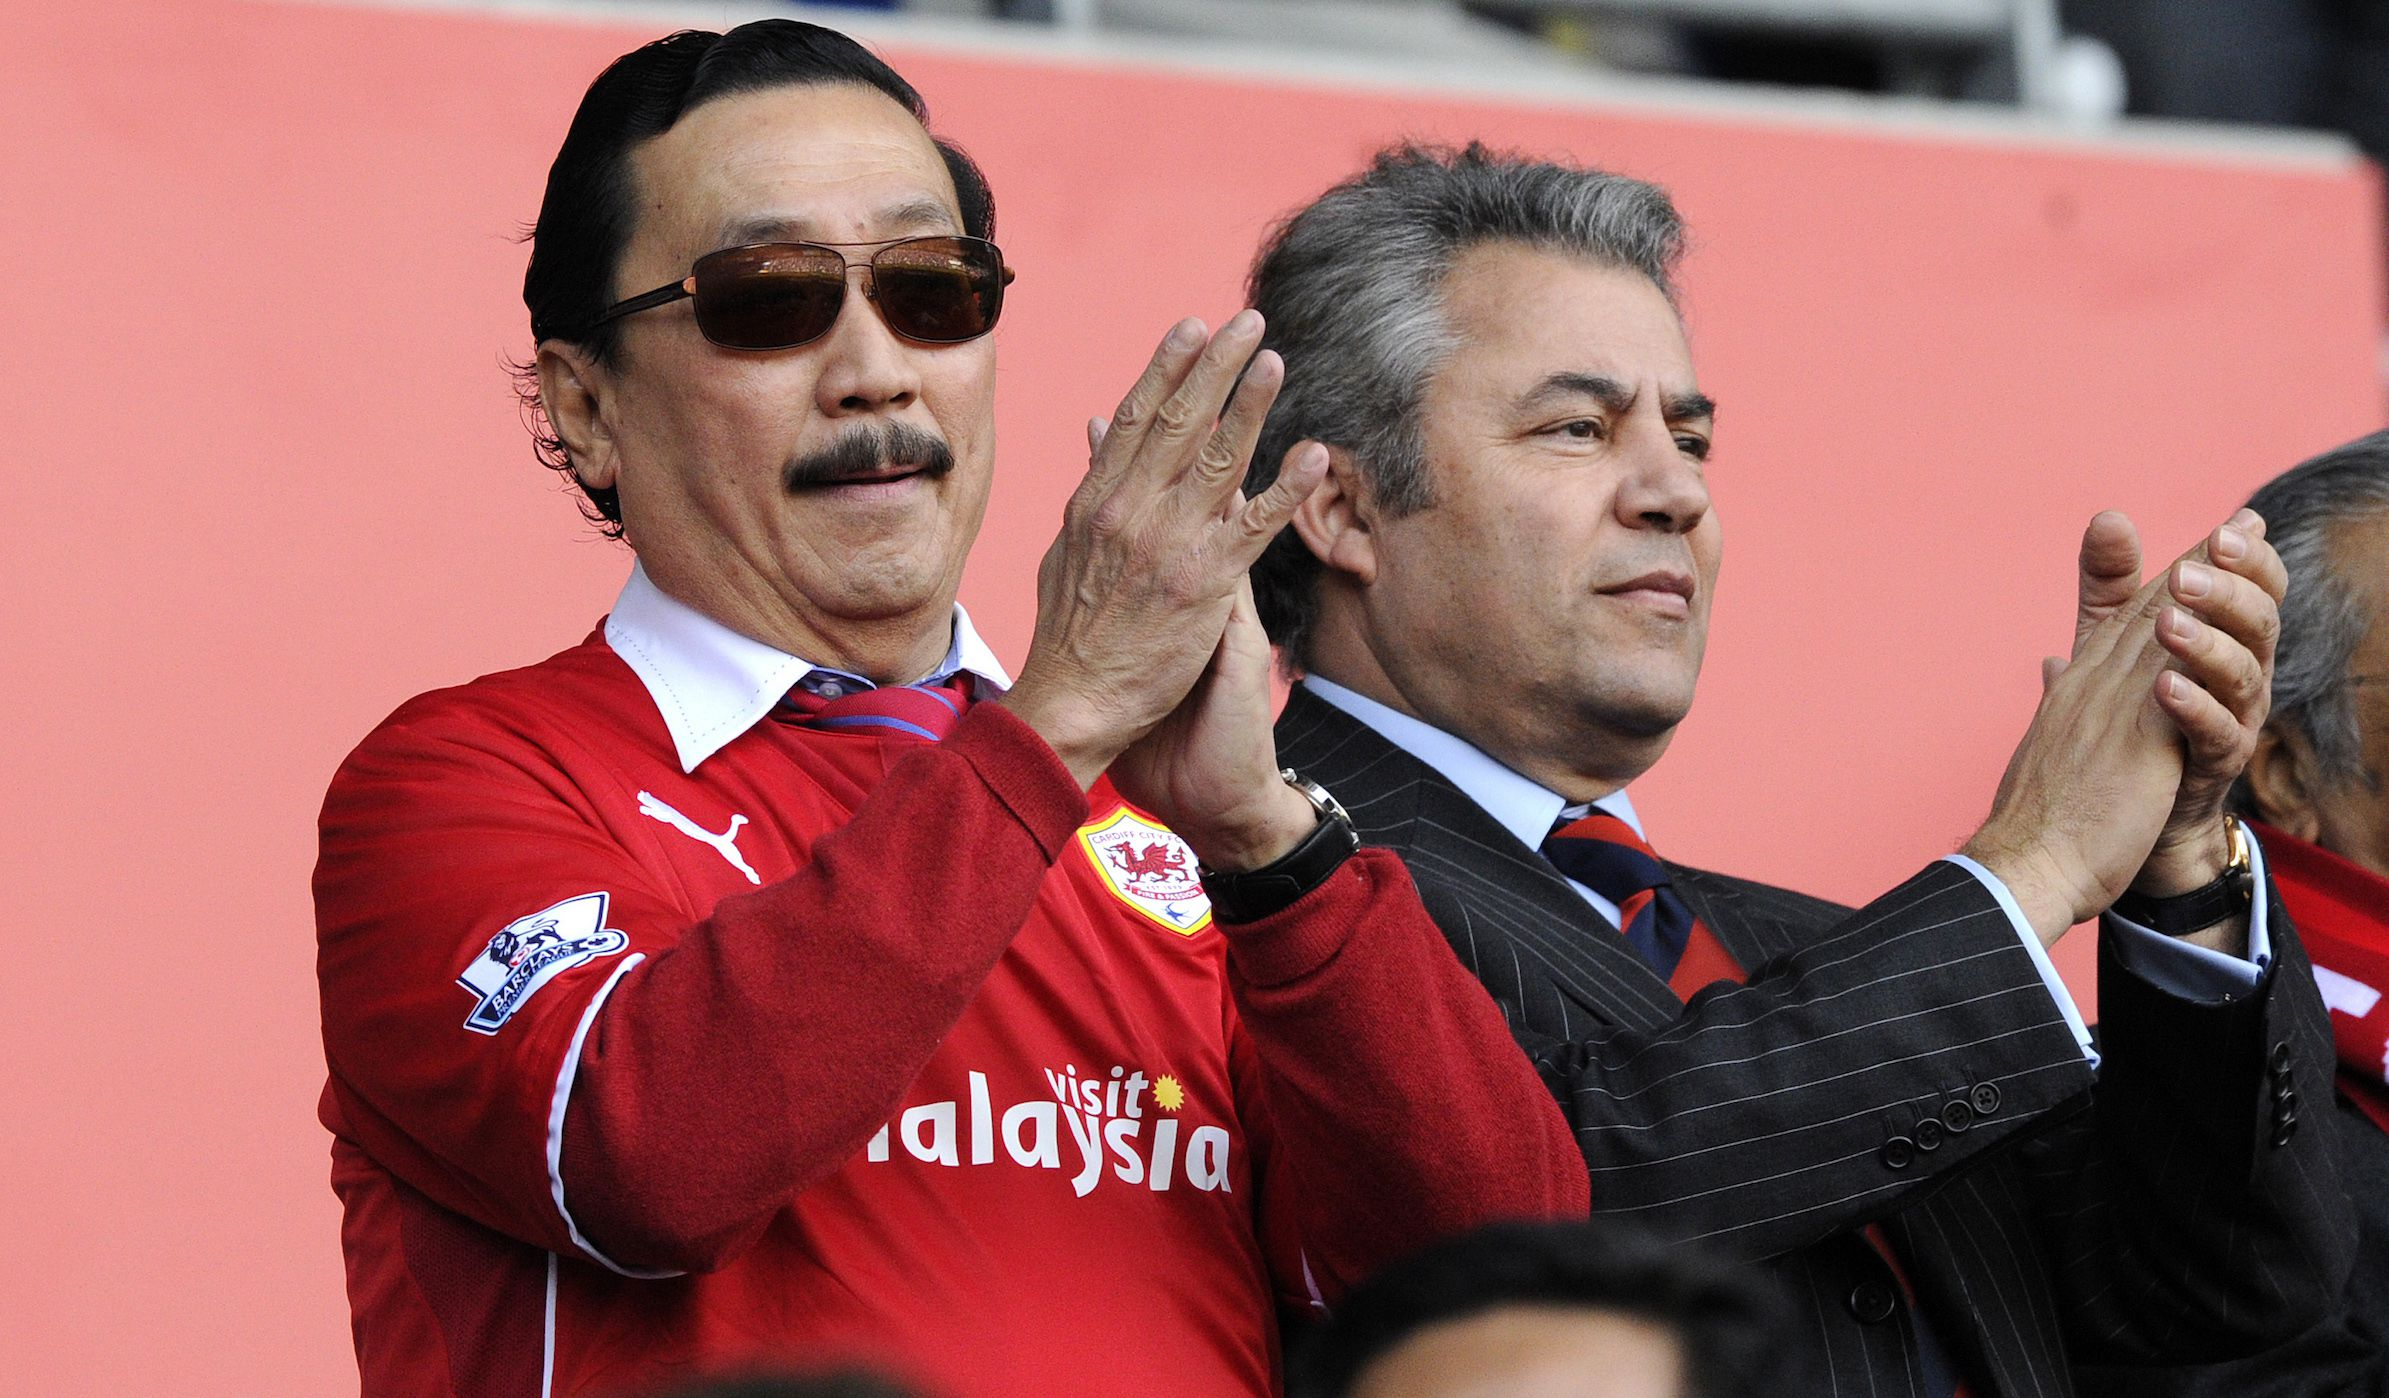 """Cardiff City's owner Vincent Tan (L) applauds with Club Chairman Mehmet Dalman during their English Premier League soccer match against Fulham at Cardiff City Stadium in Cardiff, Wales, March 8, 2014. REUTERS/Rebecca Naden (BRITAIN - Tags: SPORT SOCCER) NO USE WITH UNAUTHORIZED AUDIO, VIDEO, DATA, FIXTURE LISTS, CLUB/LEAGUE LOGOS OR """"LIVE"""" SERVICES. ONLINE IN-MATCH USE LIMITED TO 45 IMAGES, NO VIDEO EMULATION. NO USE IN BETTING, GAMES OR SINGLE CLUB/LEAGUE/PLAYER PUBLICATIONS. FOR EDITORIAL USE ONLY. NOT FOR SALE FOR MARKETING OR ADVERTISING CAMPAIGNS - RTR3G8M9"""